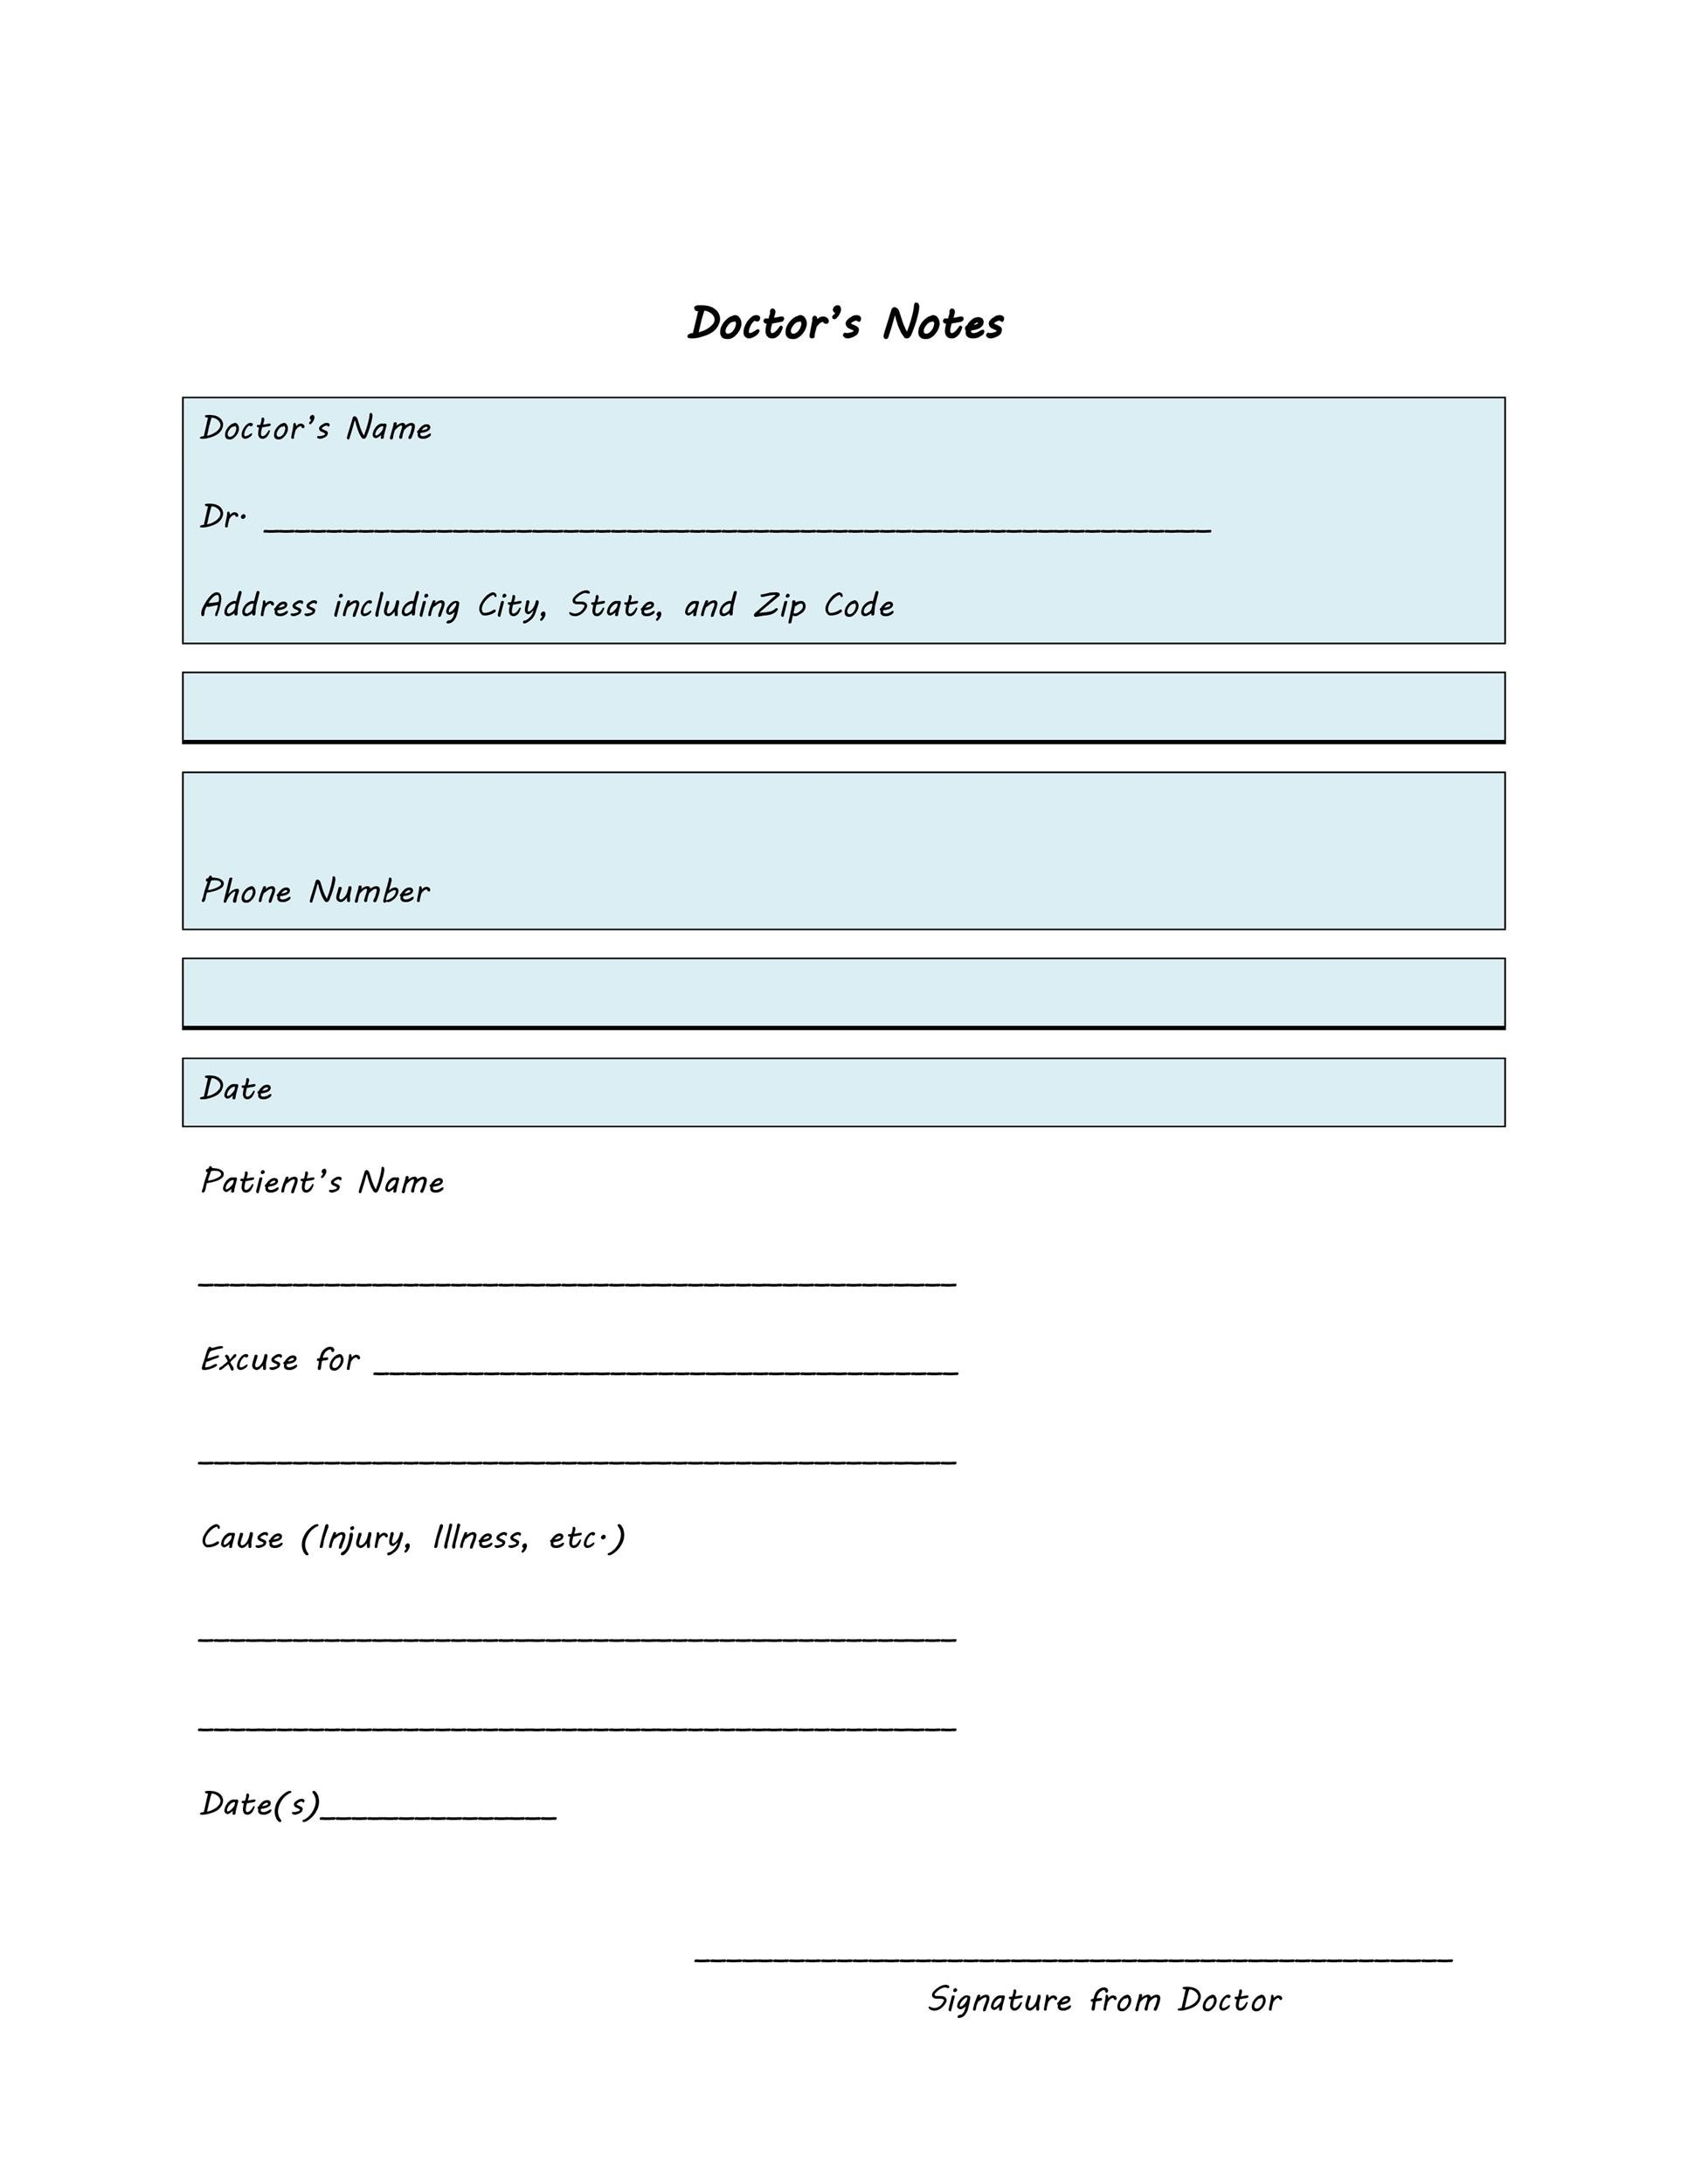 25+ Free Doctor Note / Excuse Templates - Template Lab - doctors note template